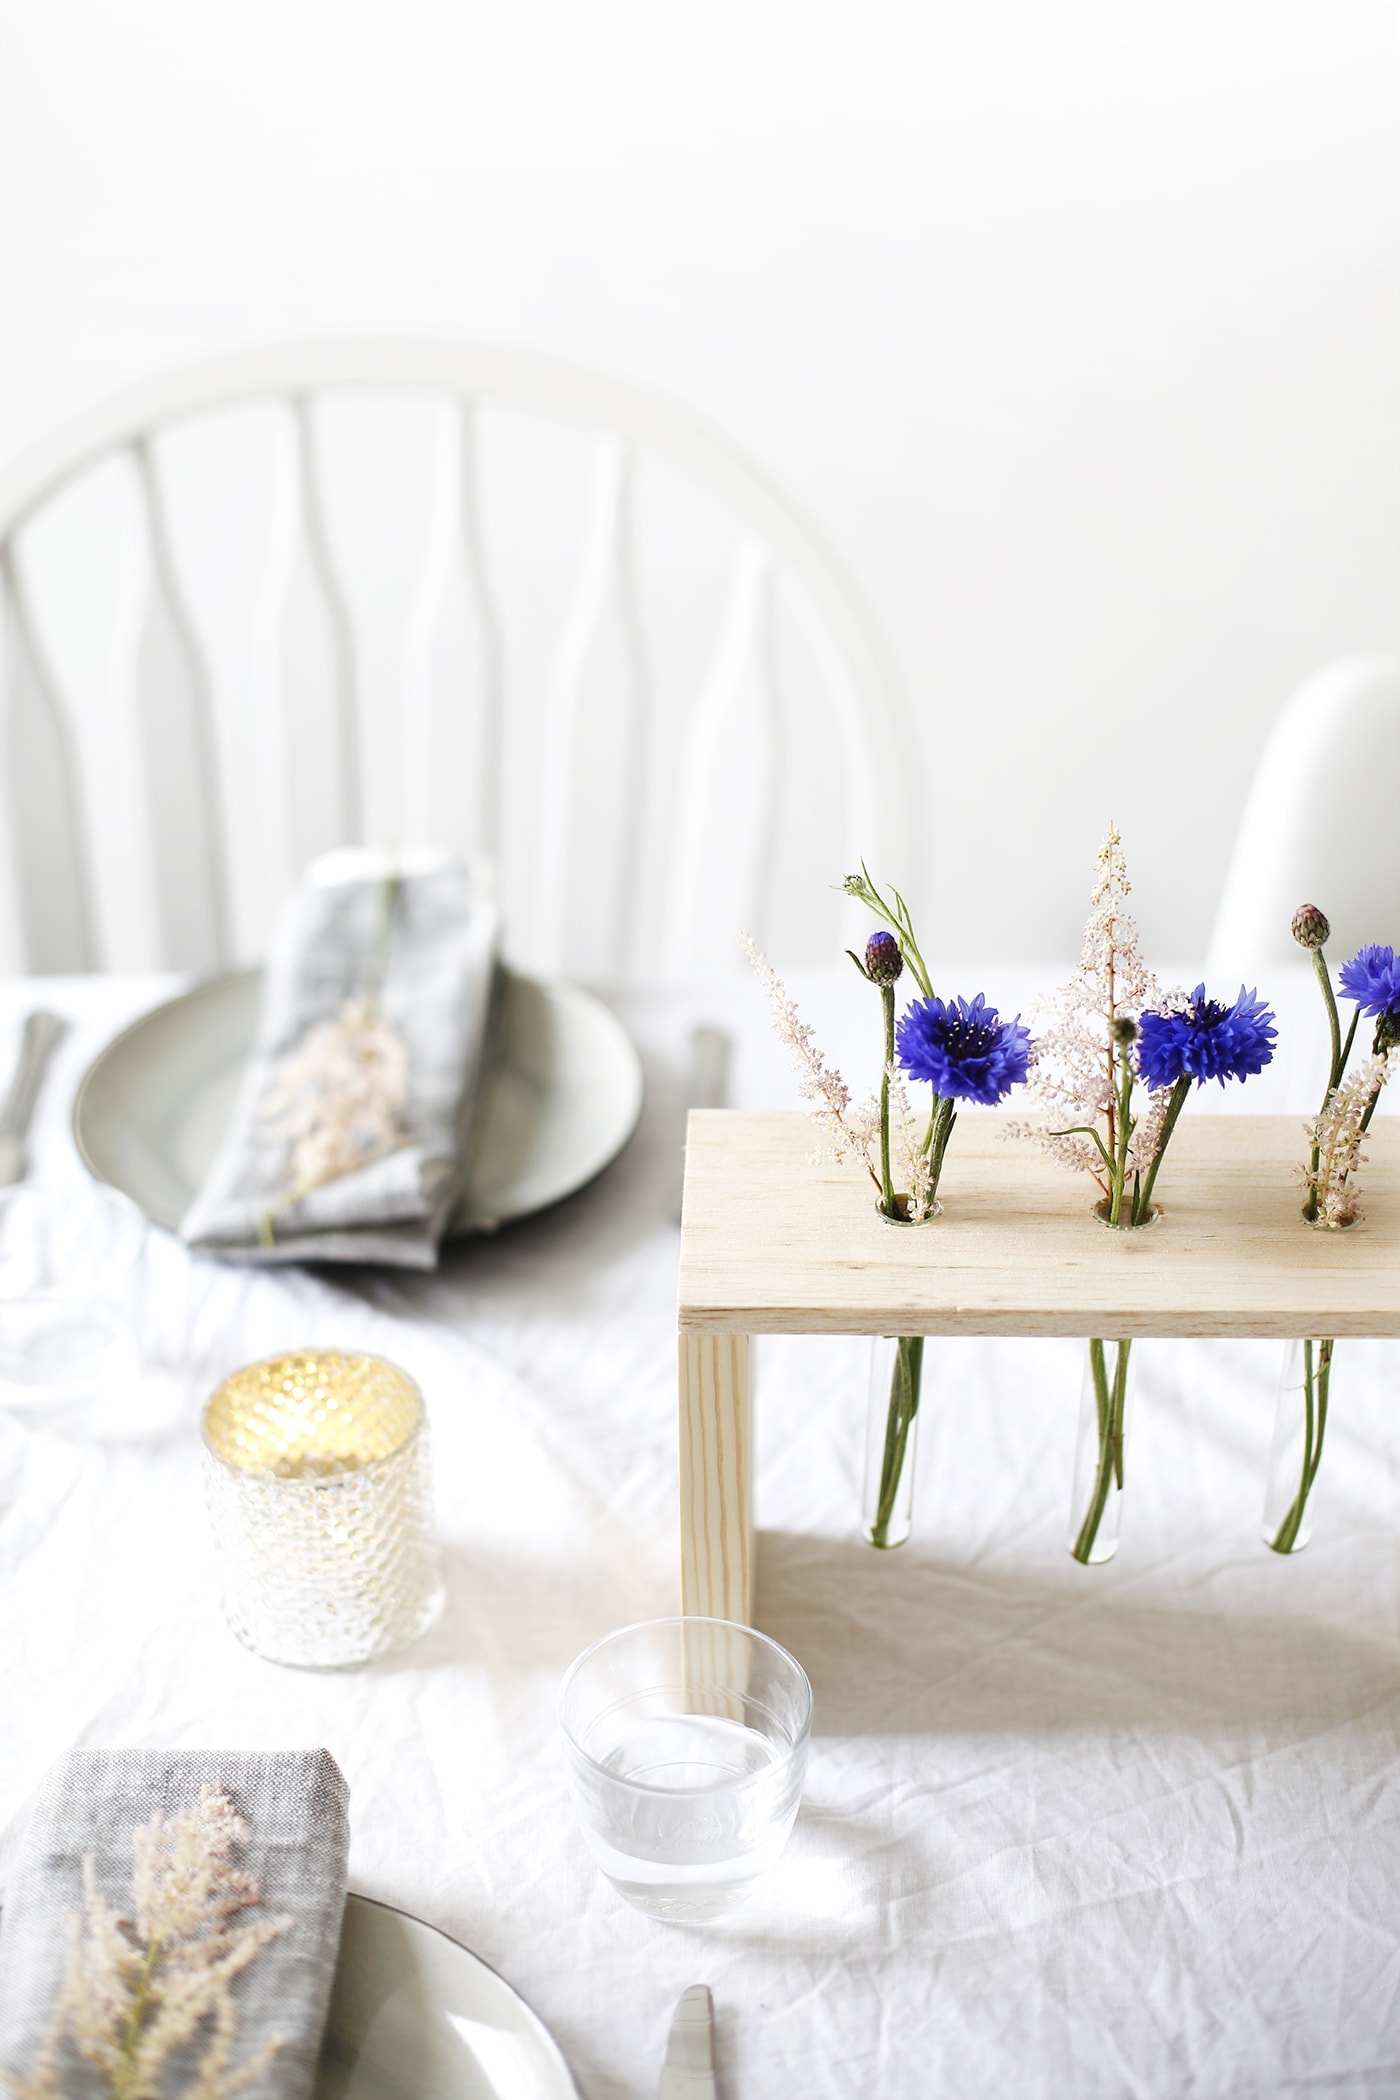 DIY floral table centre   easy craft tutorial perfect for entertaining   home ideas